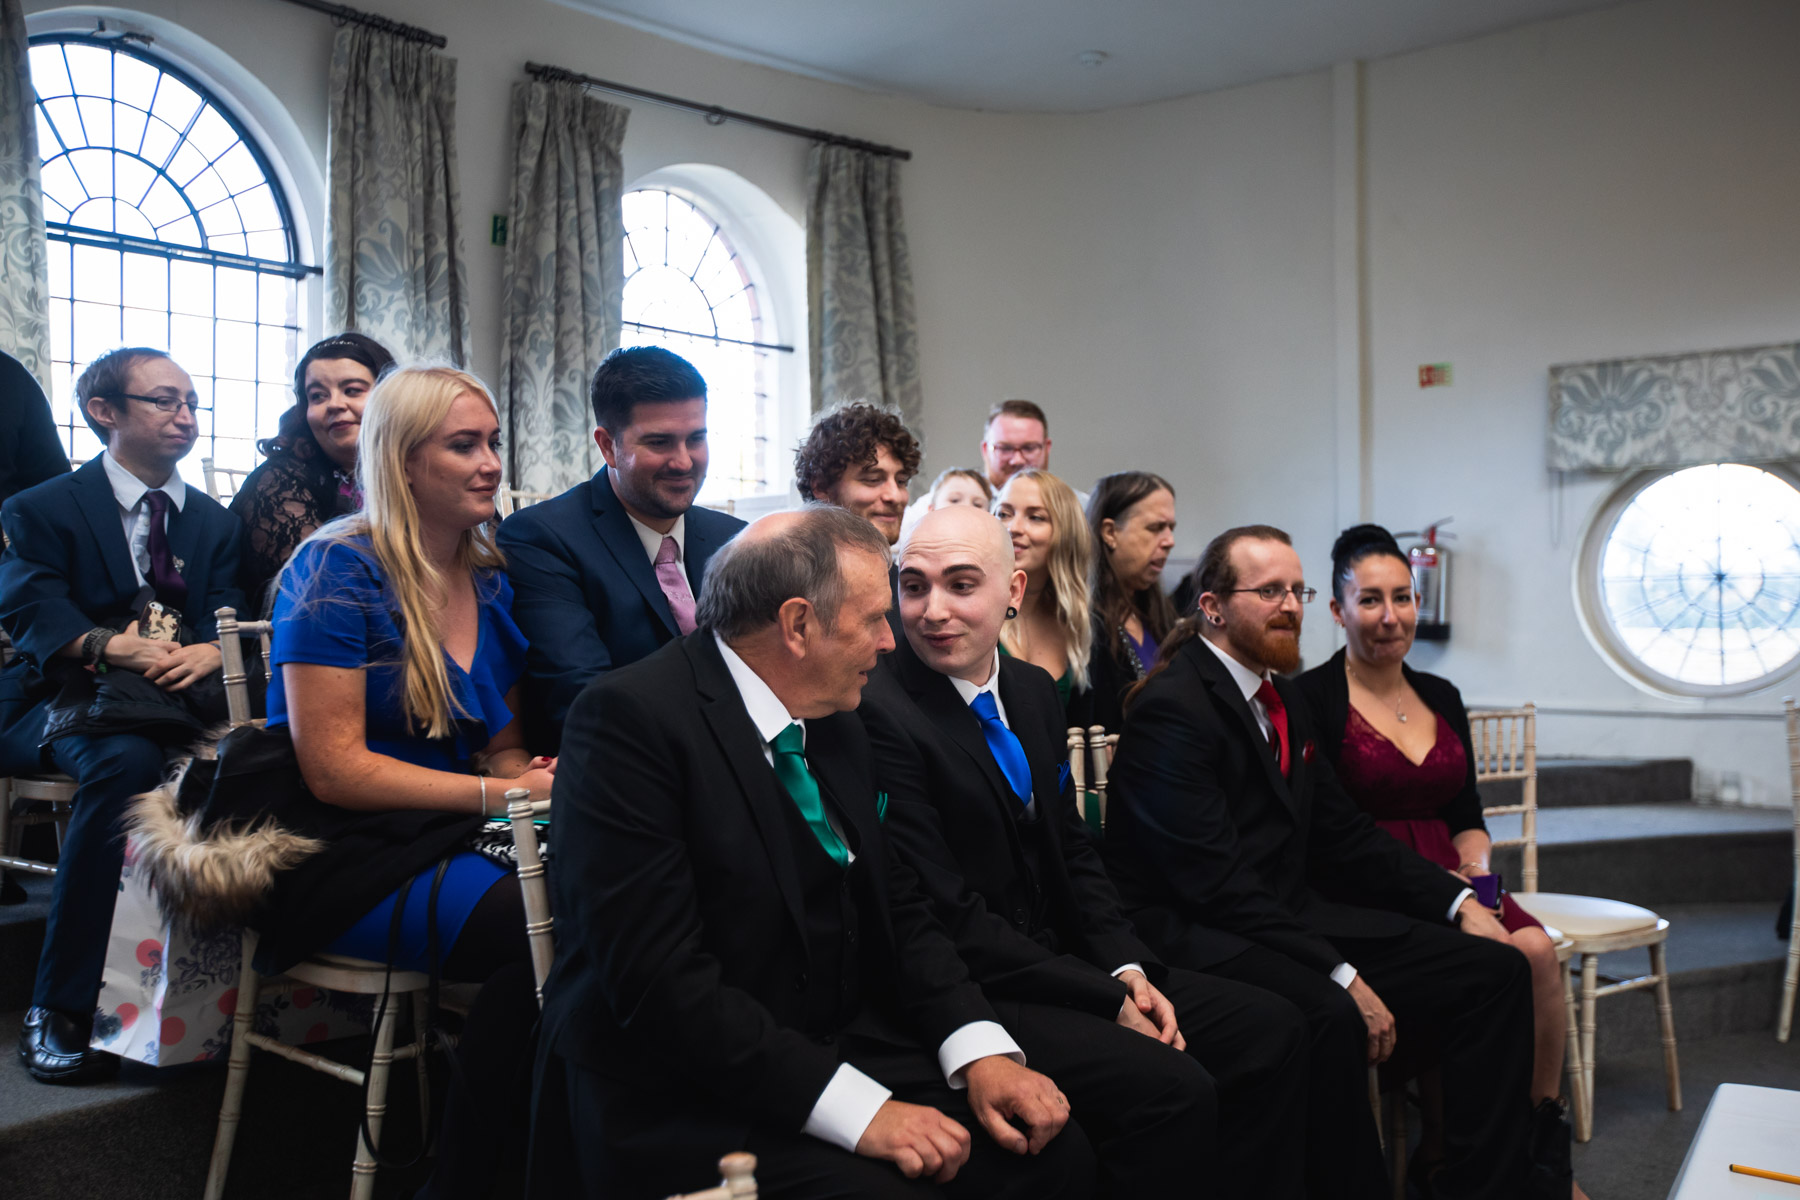 Wedding guests with groom